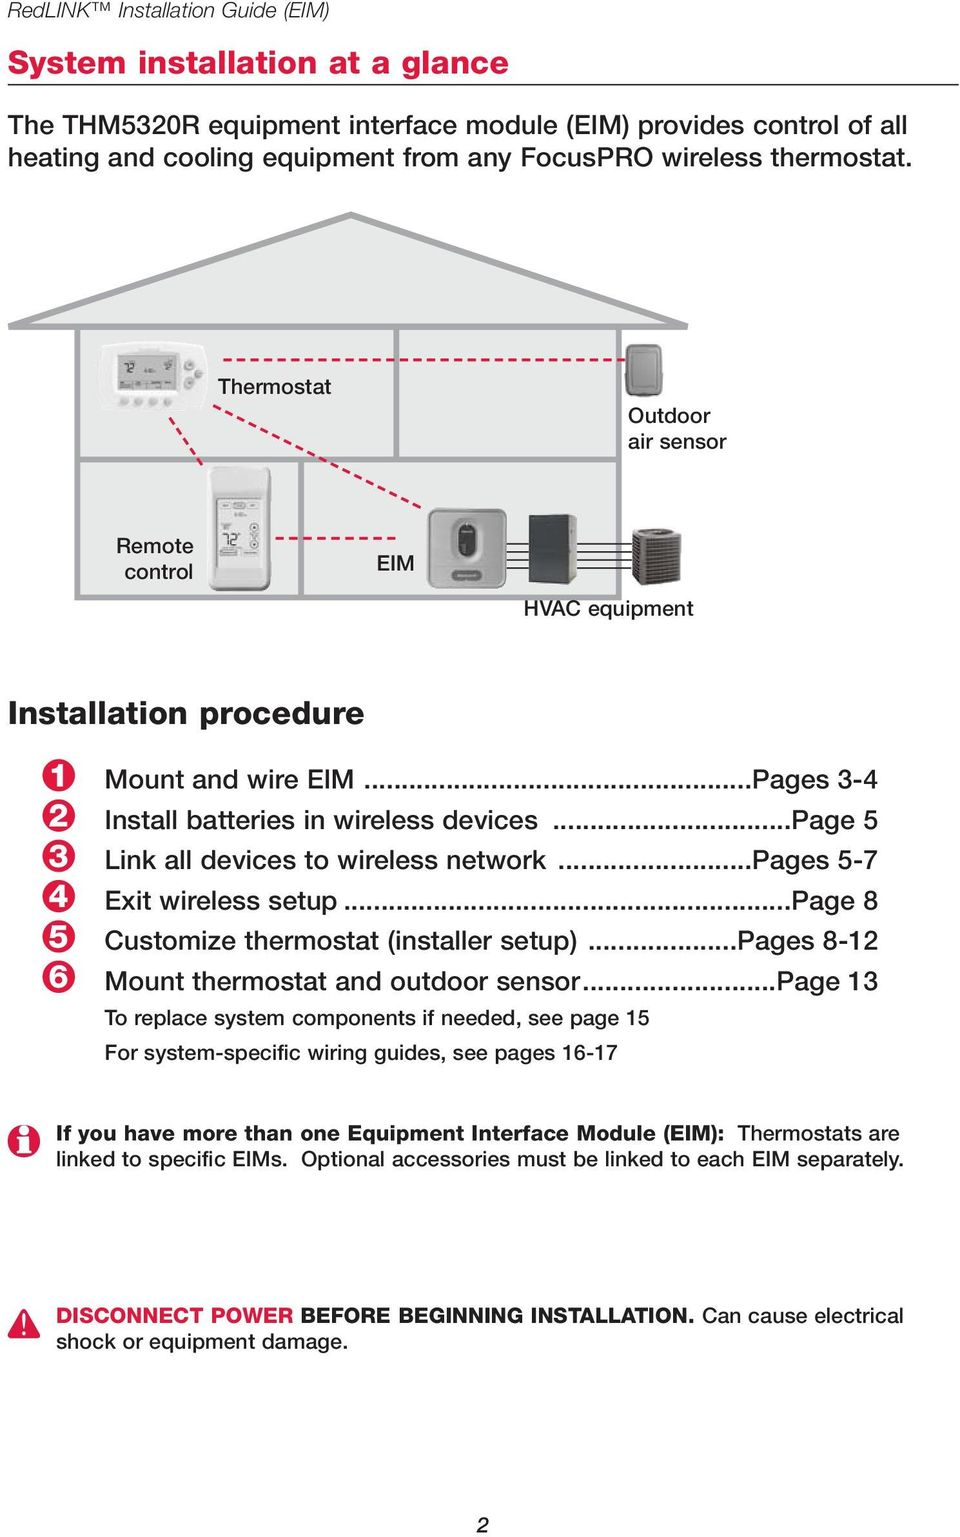 System Installation Guide Pdf Wireless Wiring Diagram Page 5 Link All Devices To Networkpages